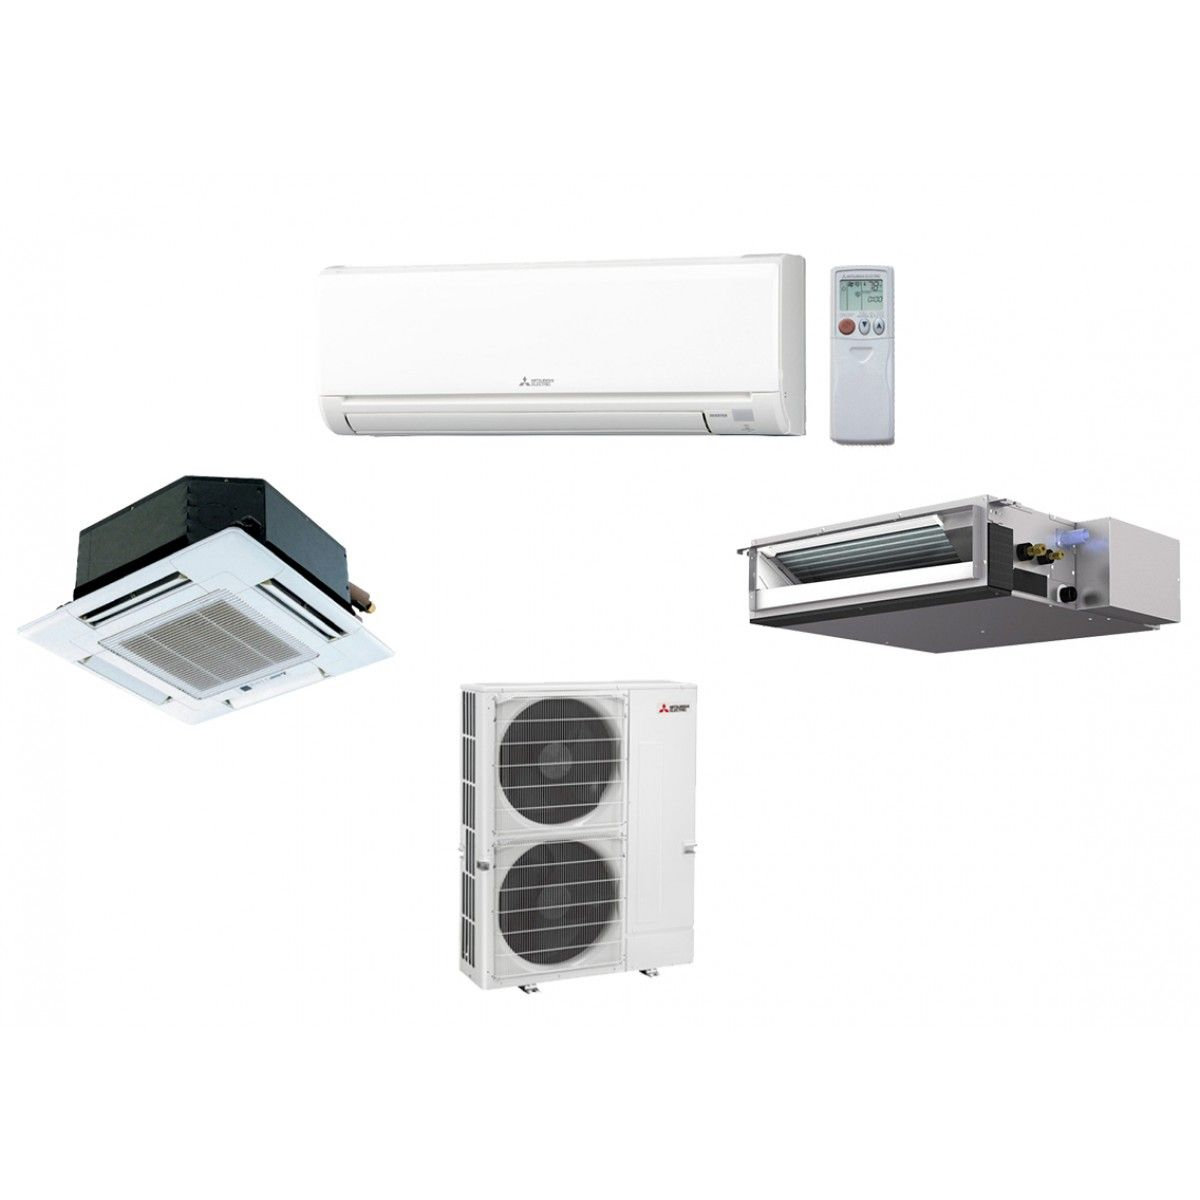 Indoor Heating And Cooling Units : Mxz c na split air conditioning and heating k btu up